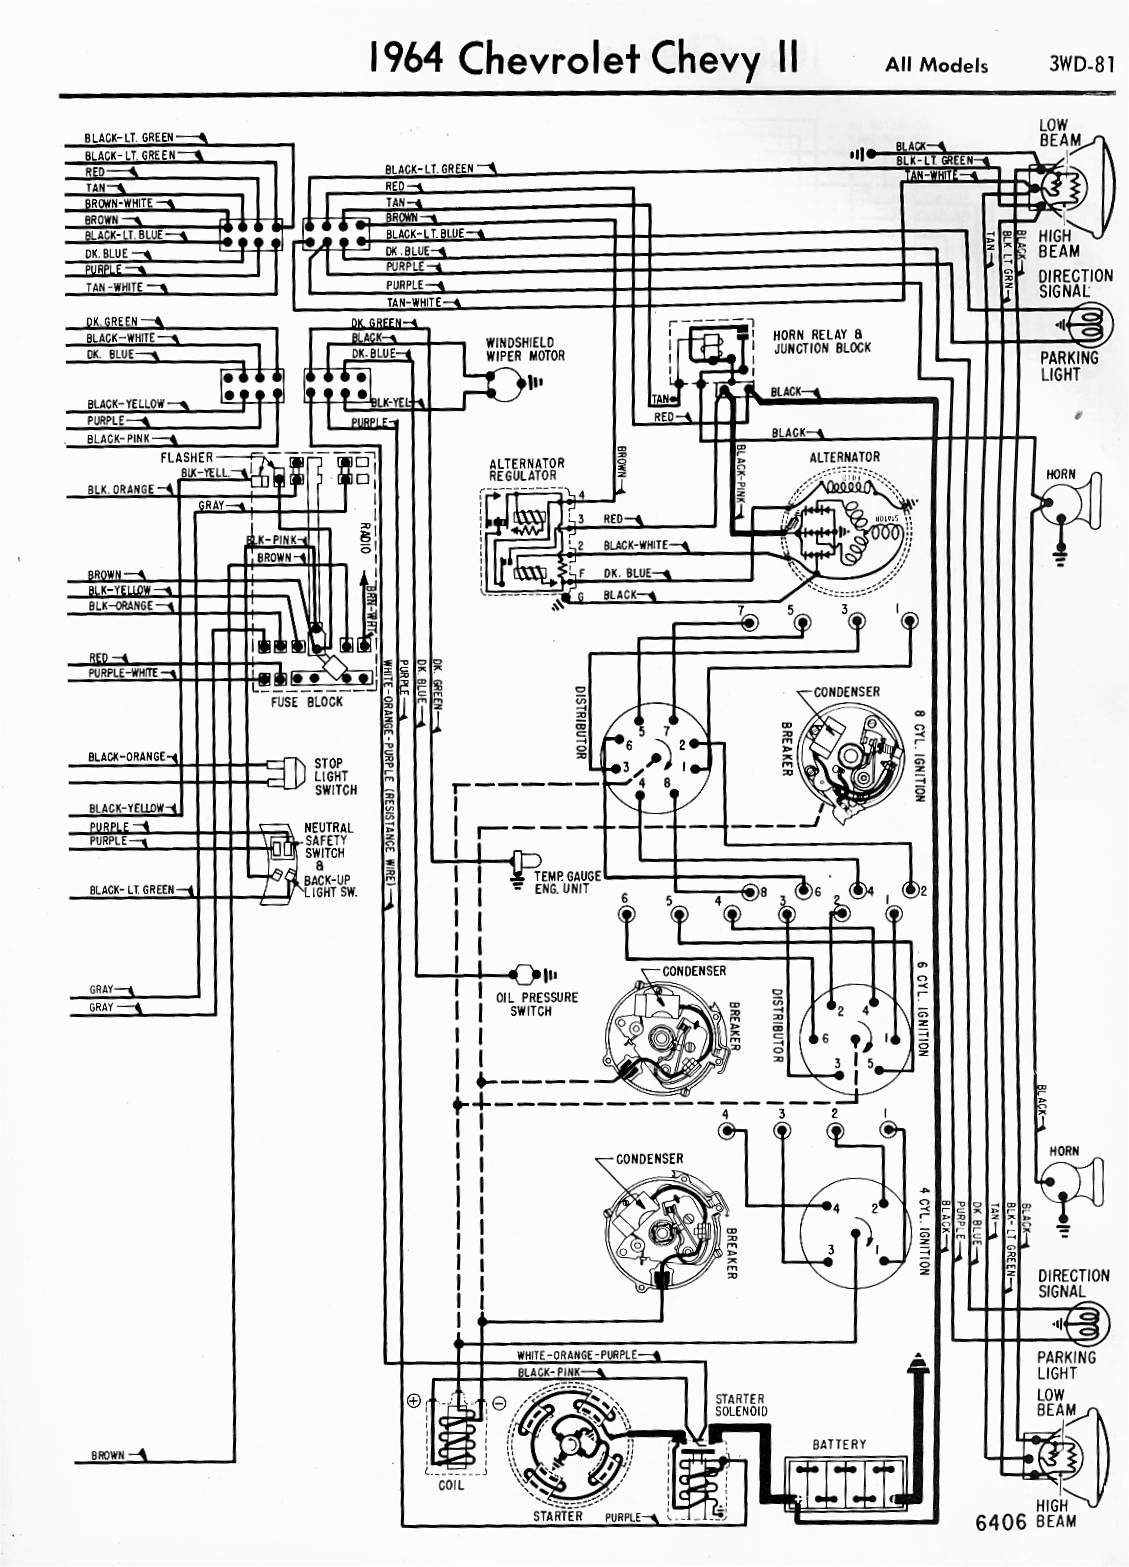 DIAGRAM] 1973 Chevy Nova Fuse Box Diagram FULL Version HD Quality Box  Diagram - BASKETBALLSEATINGDIAGRAM.K-DANSE.FRDatabase diagramming tool - K-danse.fr